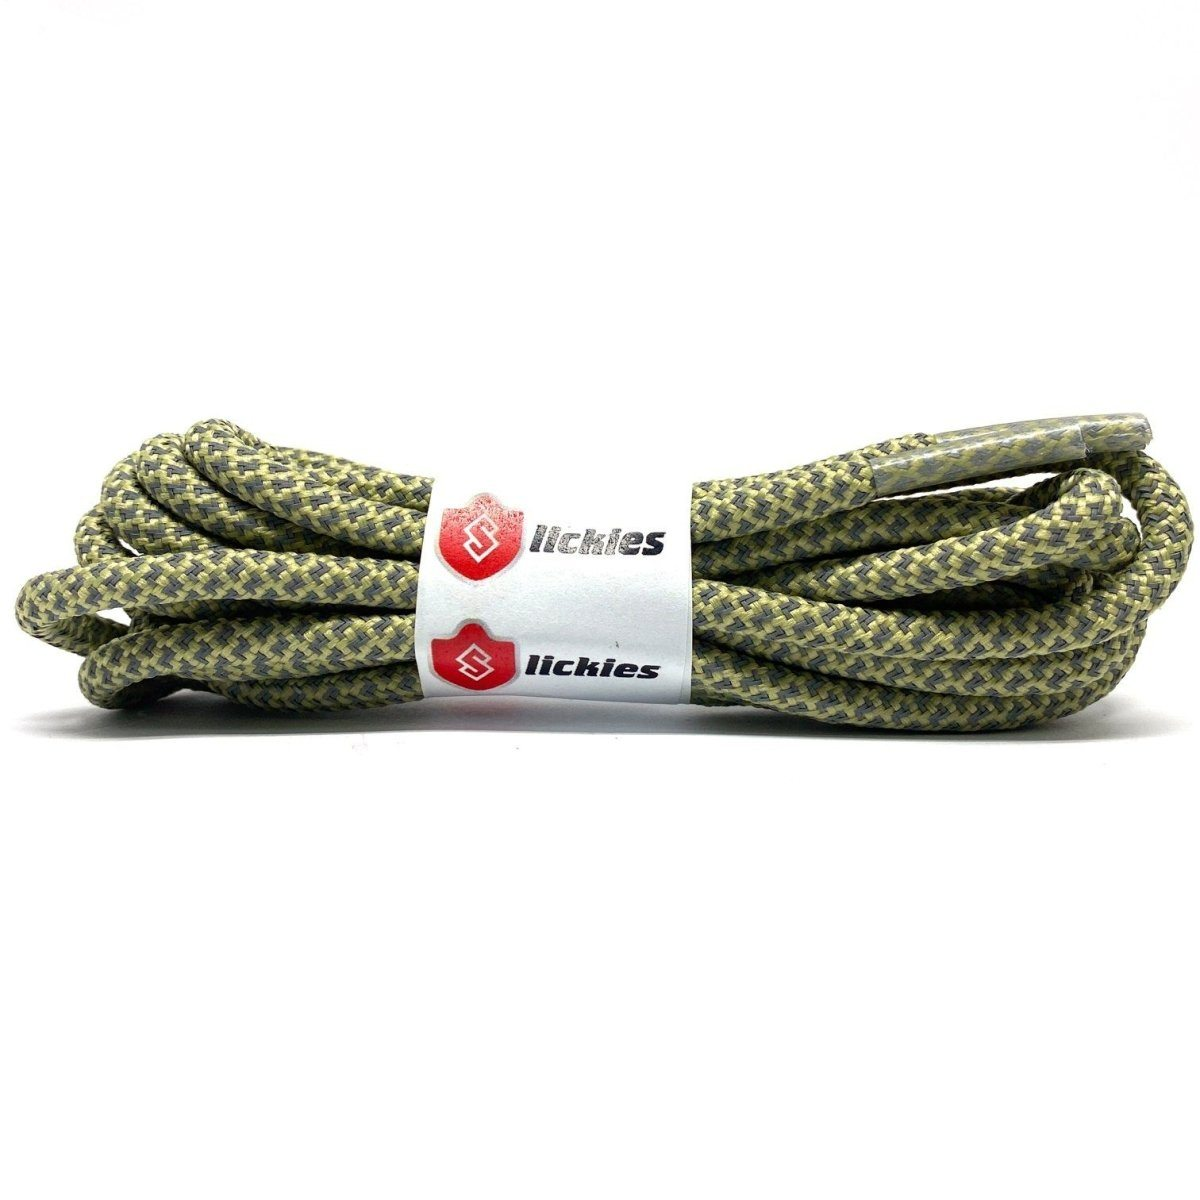 3M Rope - 3M Reflective Rope Laces - Static Marsh For Yeezy Boost 350 V2 Marsh